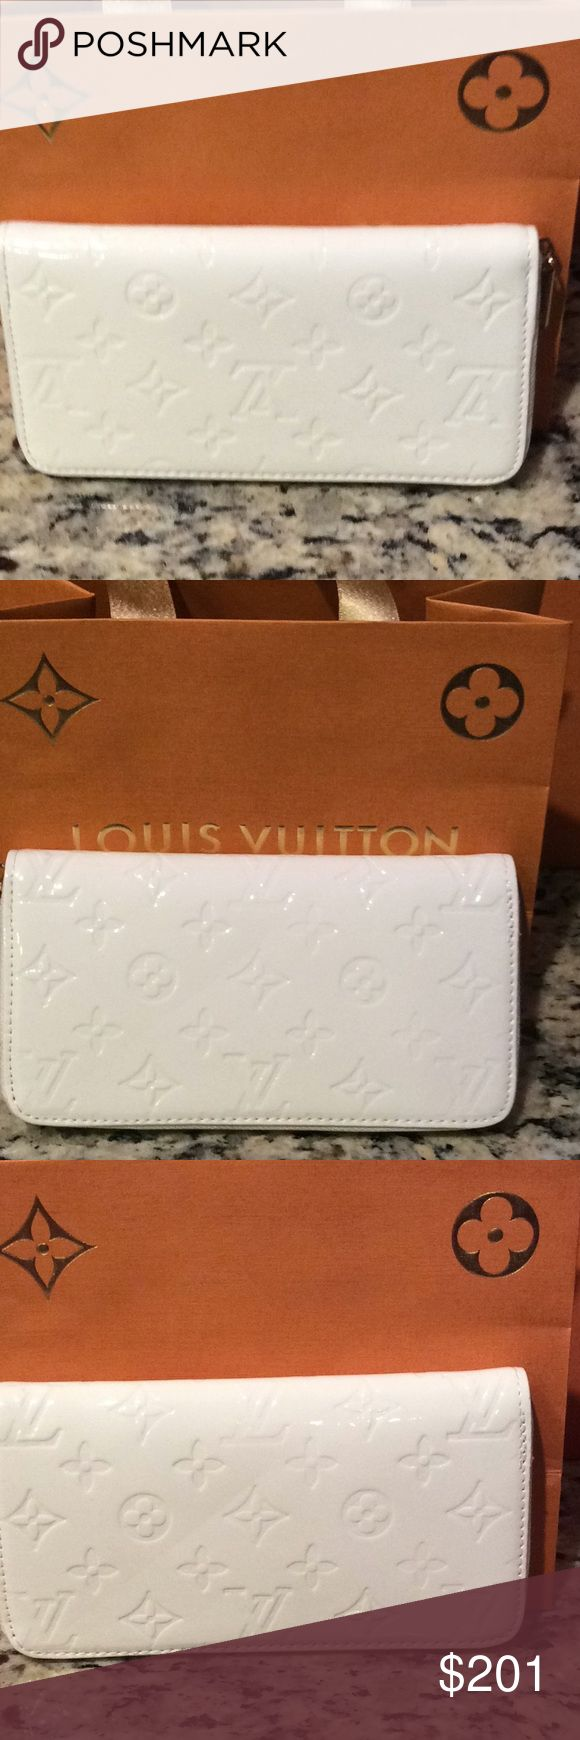 New Louis Vuitton off white full zip wallet Just make an offer All reasonable offers will be considered   This is a brand new Louis Vuitton off white full zip wallet with tons of card holding slots and a zipper inside for coins this is a really high quality INSPIRED or NOT AUTH piece i think bc i can't find a date stamp in it so I will sell this piece at a fraction of the cost of a real. The shopping bag in the background is not sold with this purse Louis Vuitton Bags Wallets